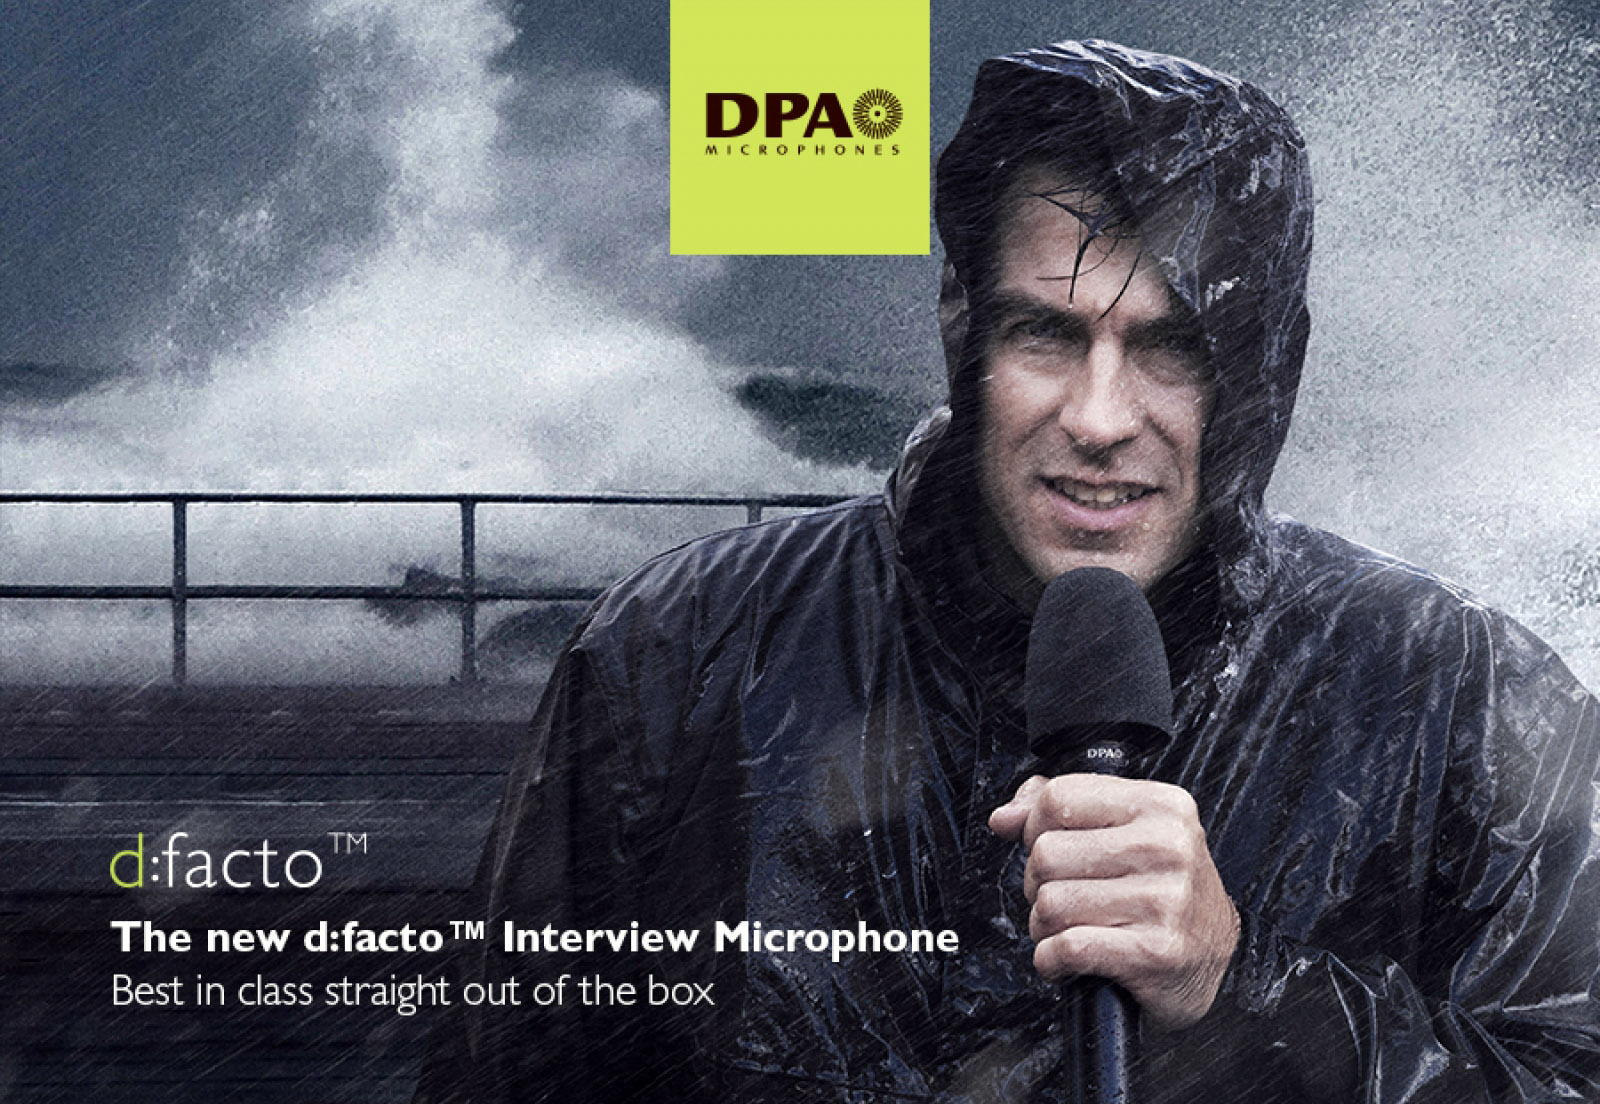 DPA d:facto™ Interview Microphone: